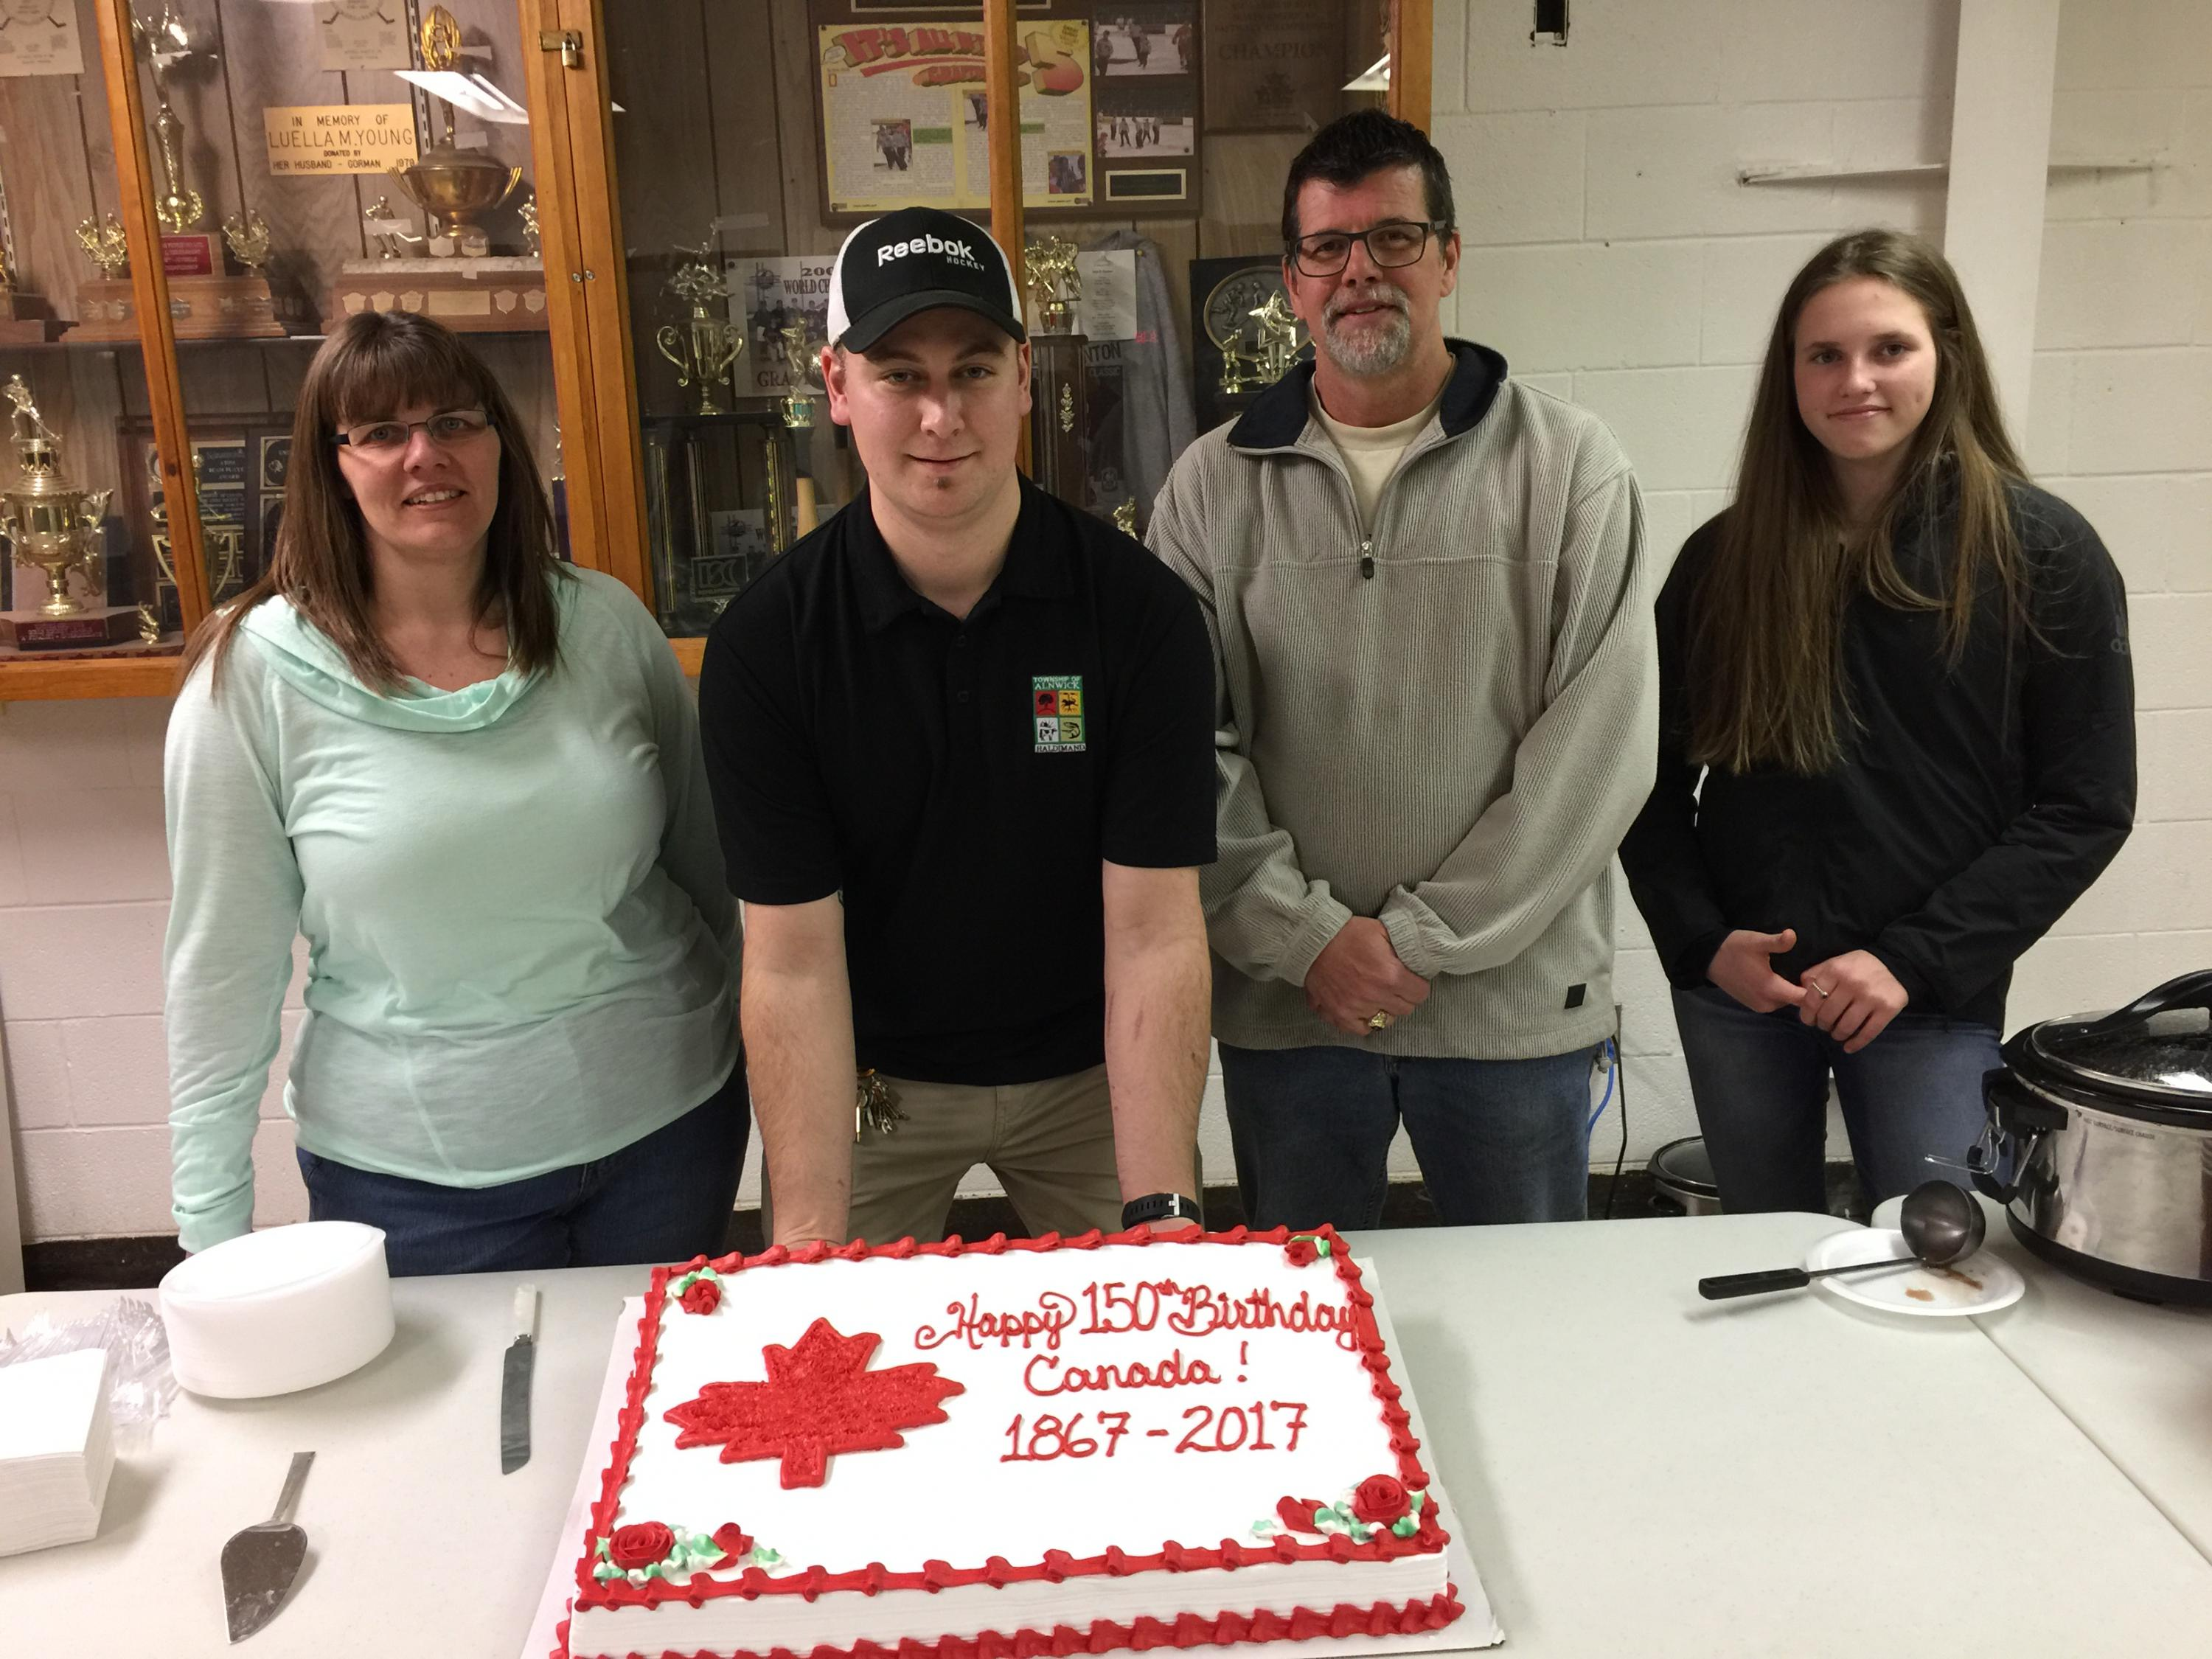 Family Day Free Skate and Canada 150 Birthday Cake